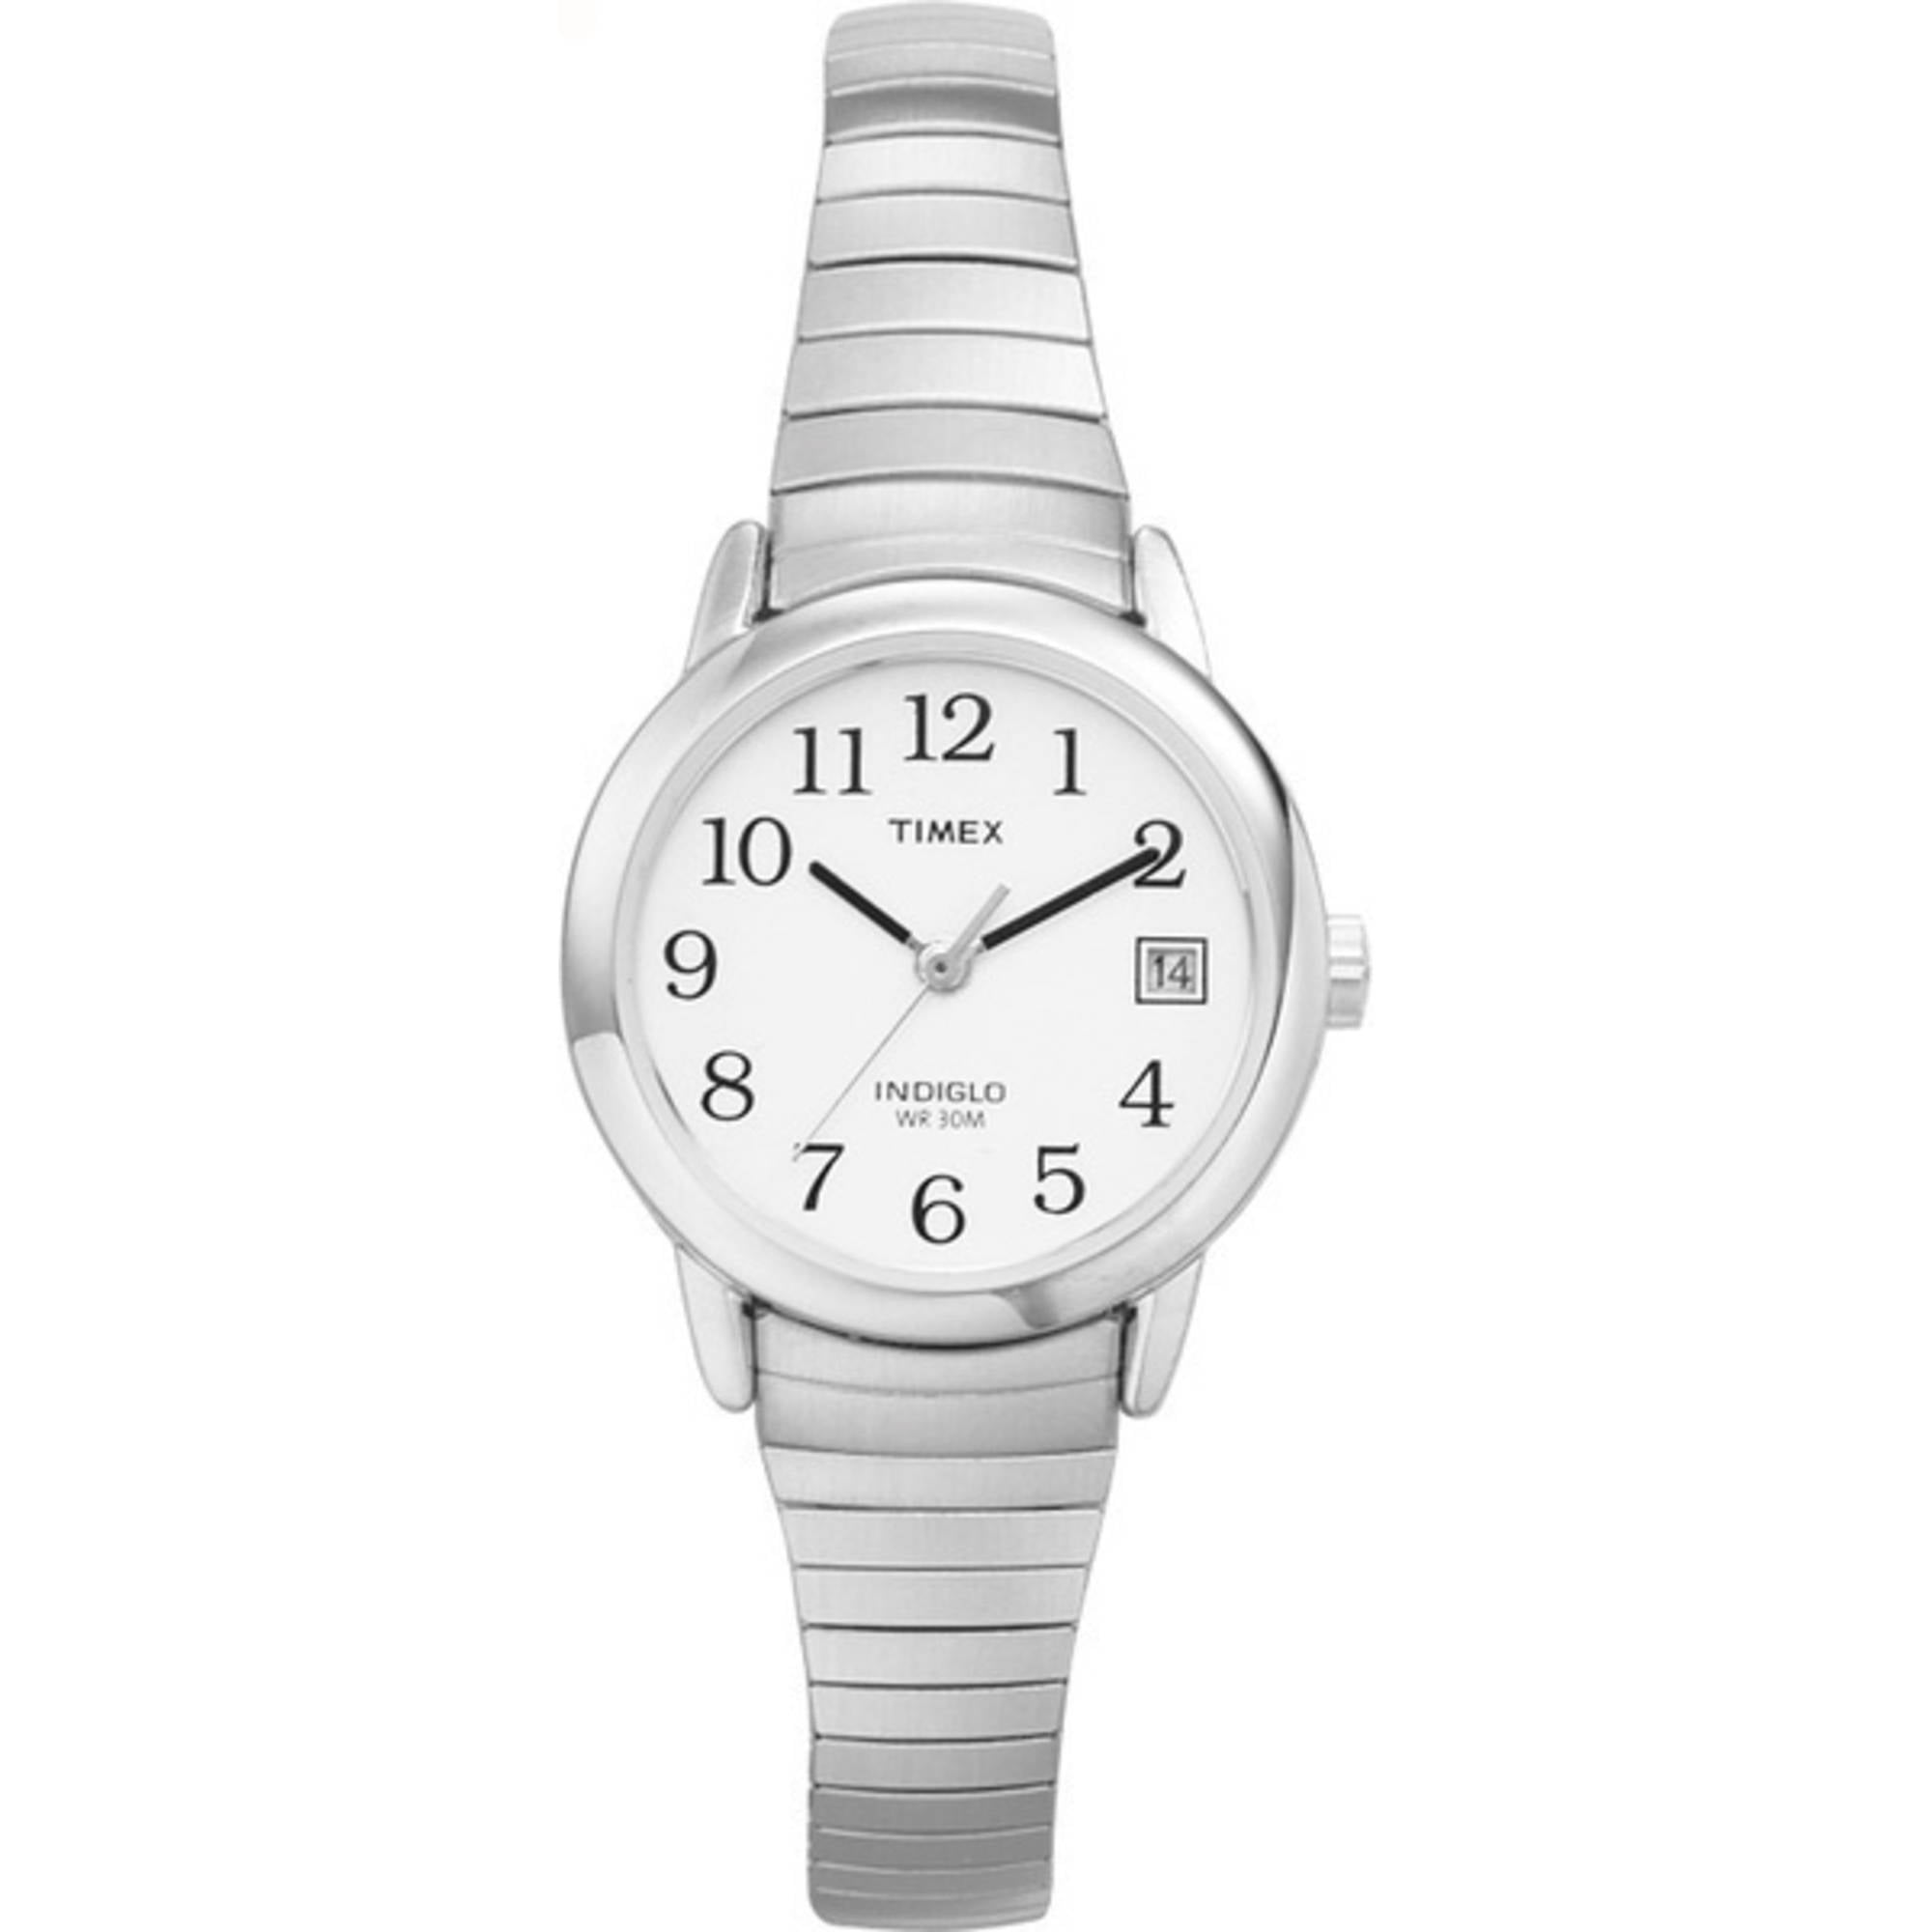 union lady watches white upper eastside east silver side products watch